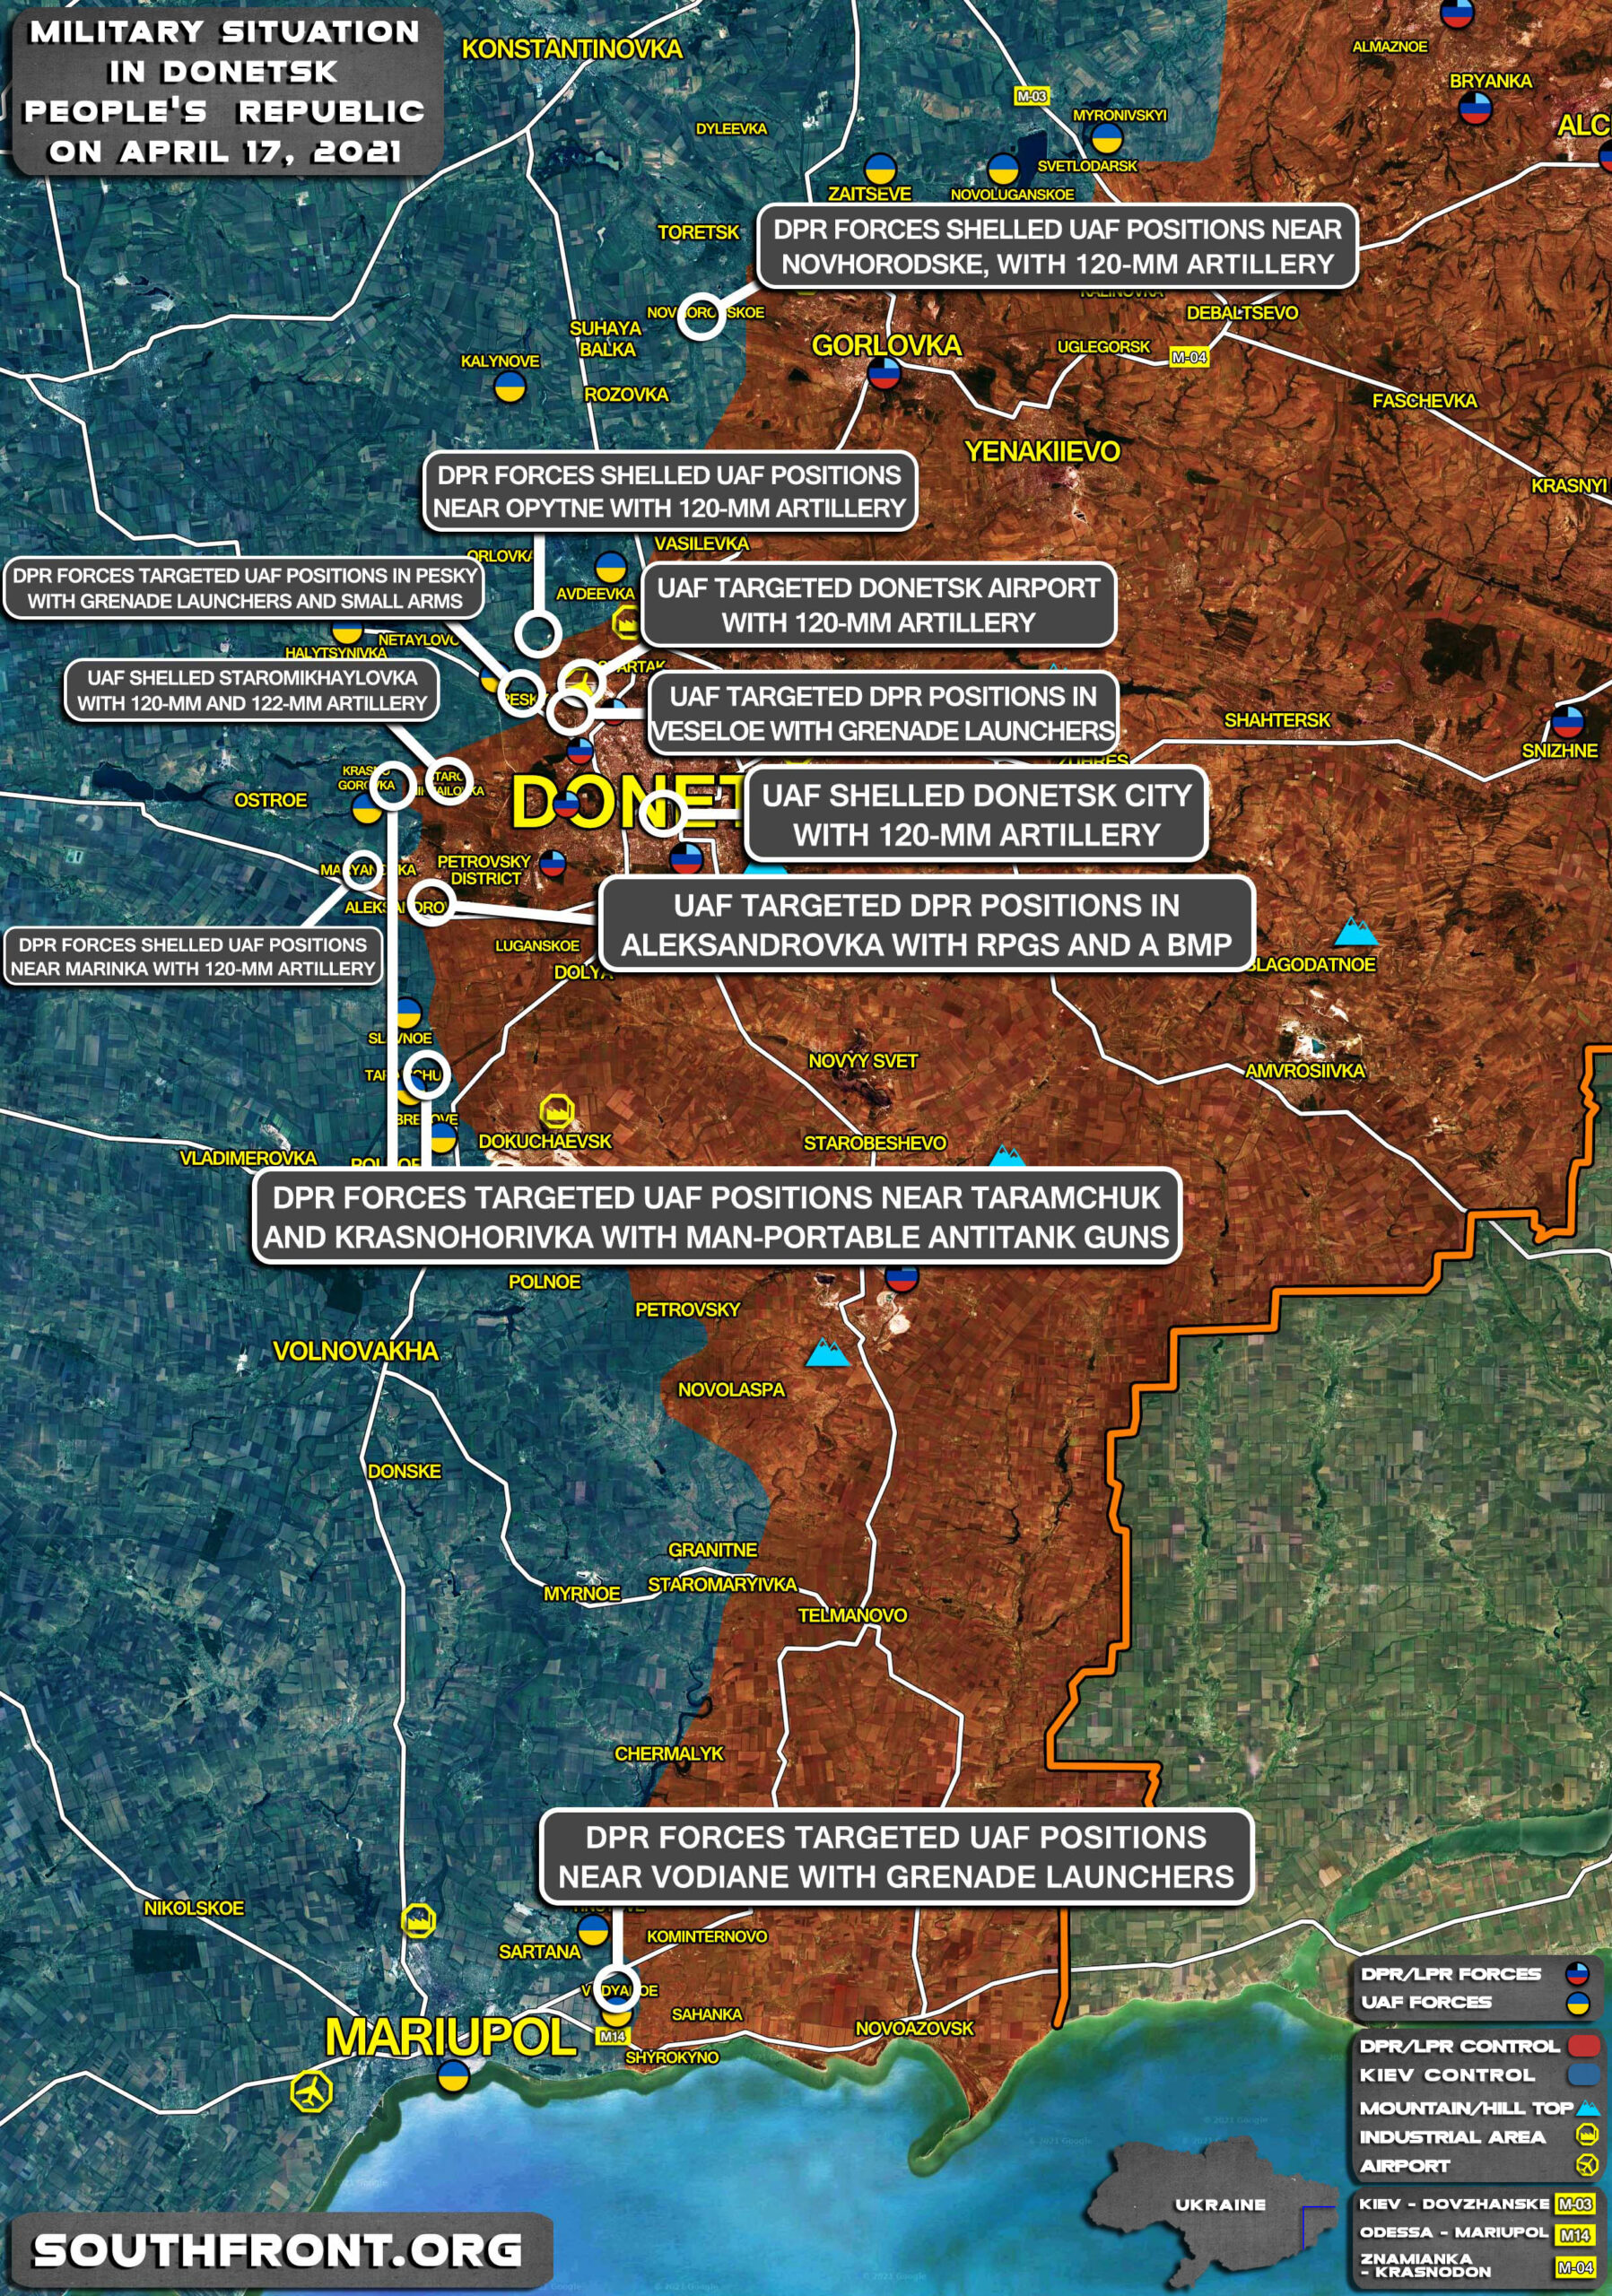 Military Situation In Donetsk People's Republic On April 17, 2021 (Map Update)